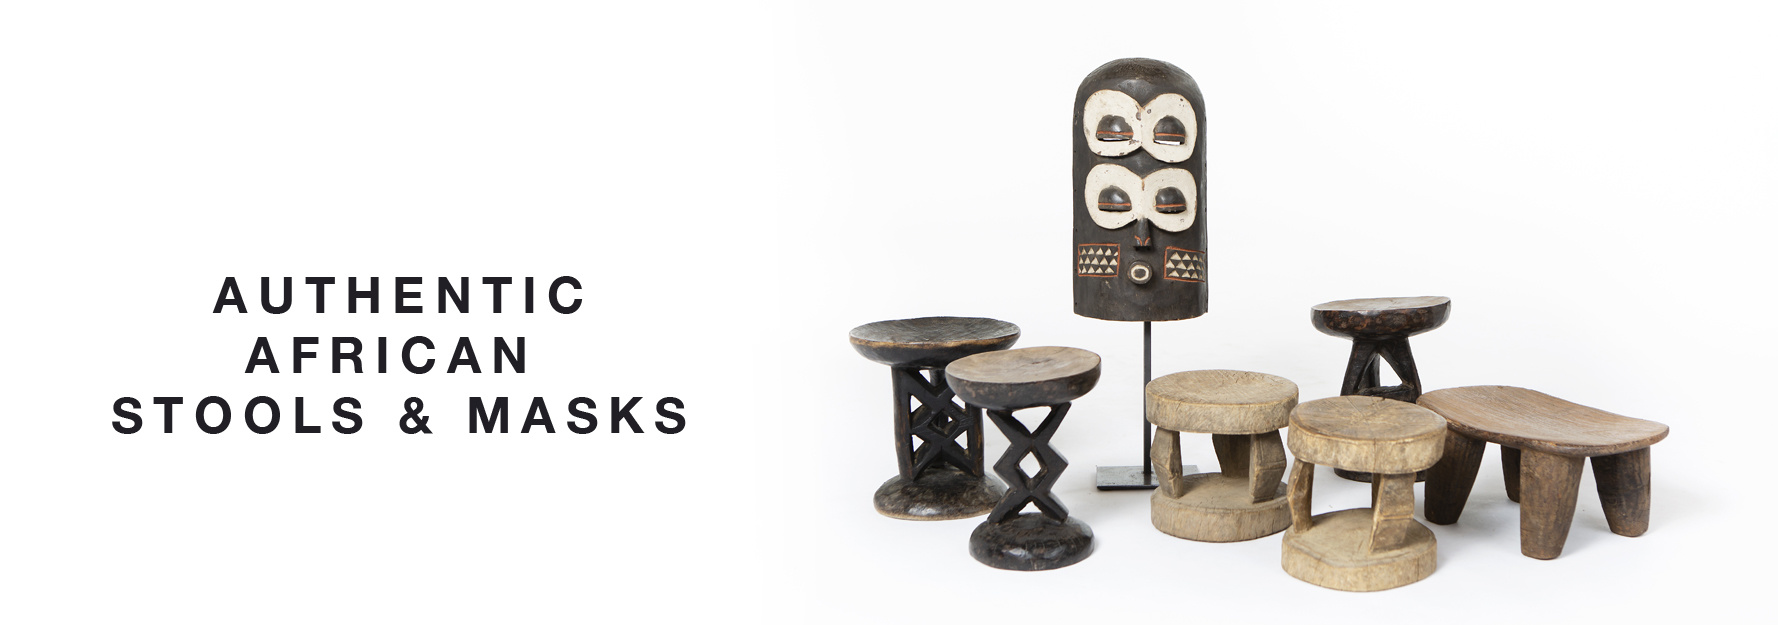 African stools & masks